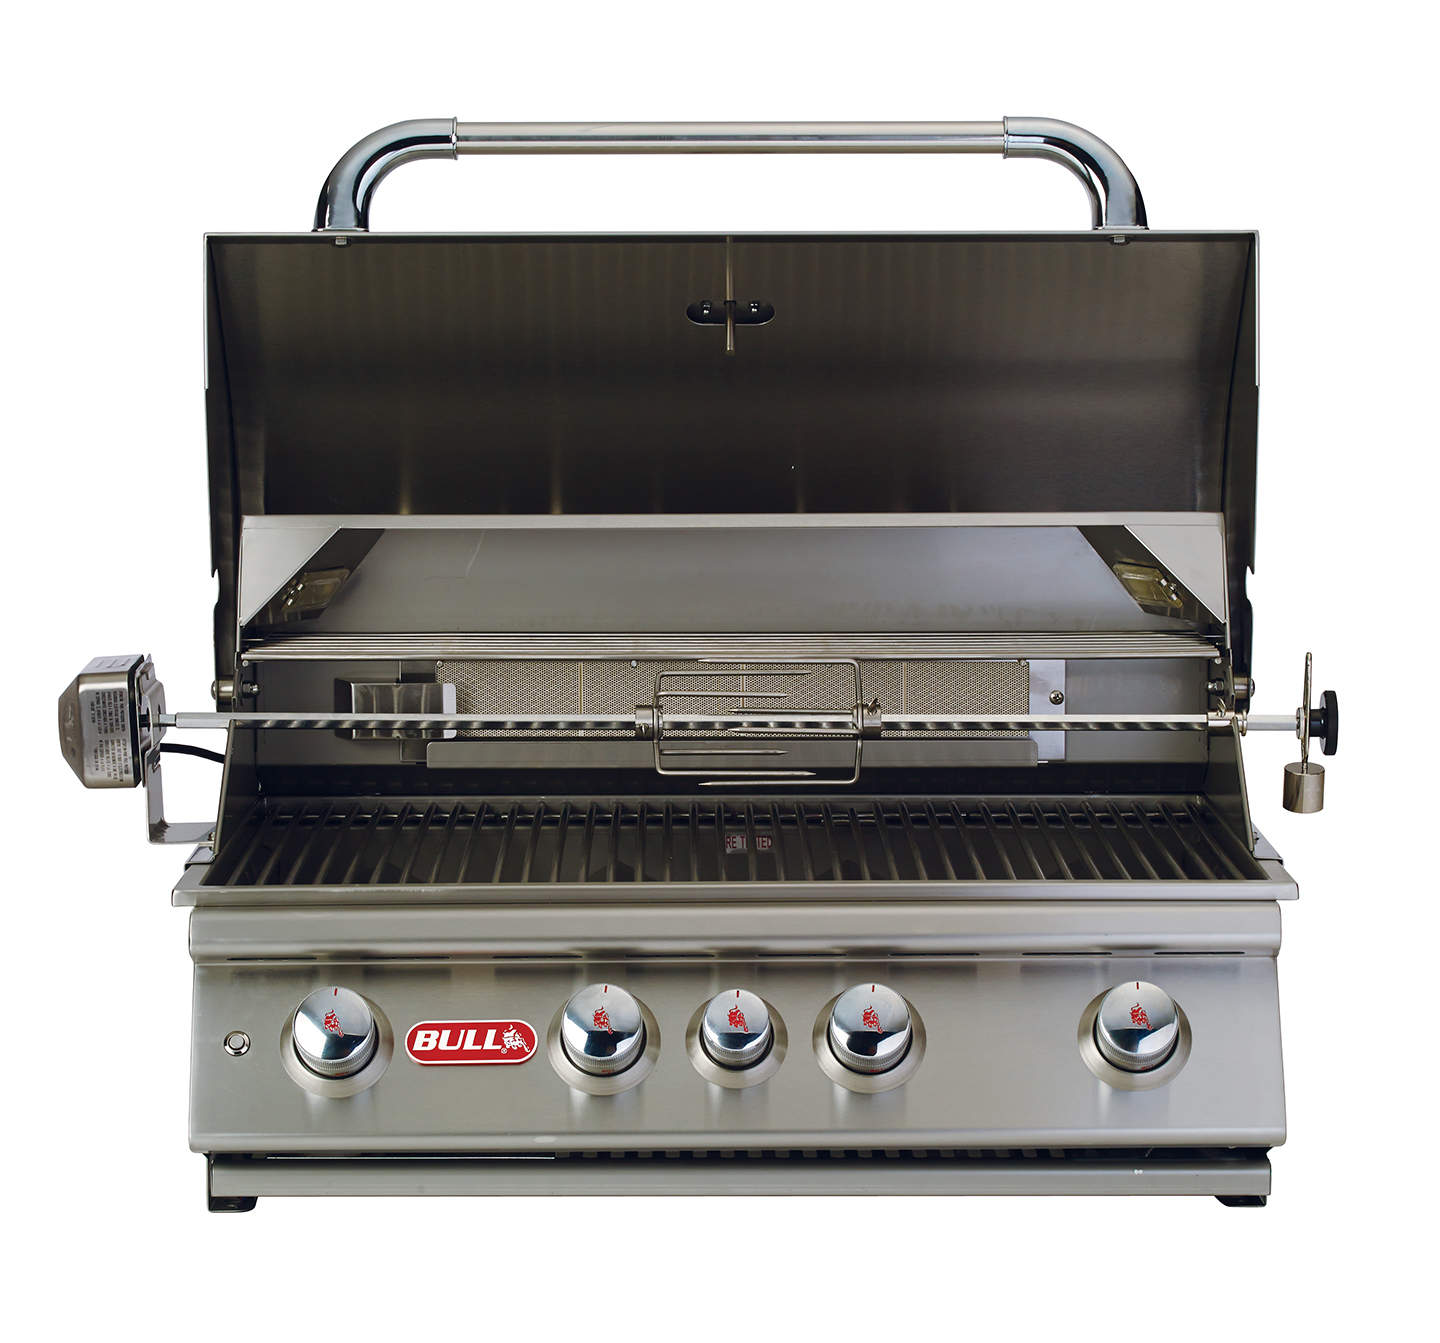 bull angus 30 inch 4 burner built in gas bbq grill with. Black Bedroom Furniture Sets. Home Design Ideas